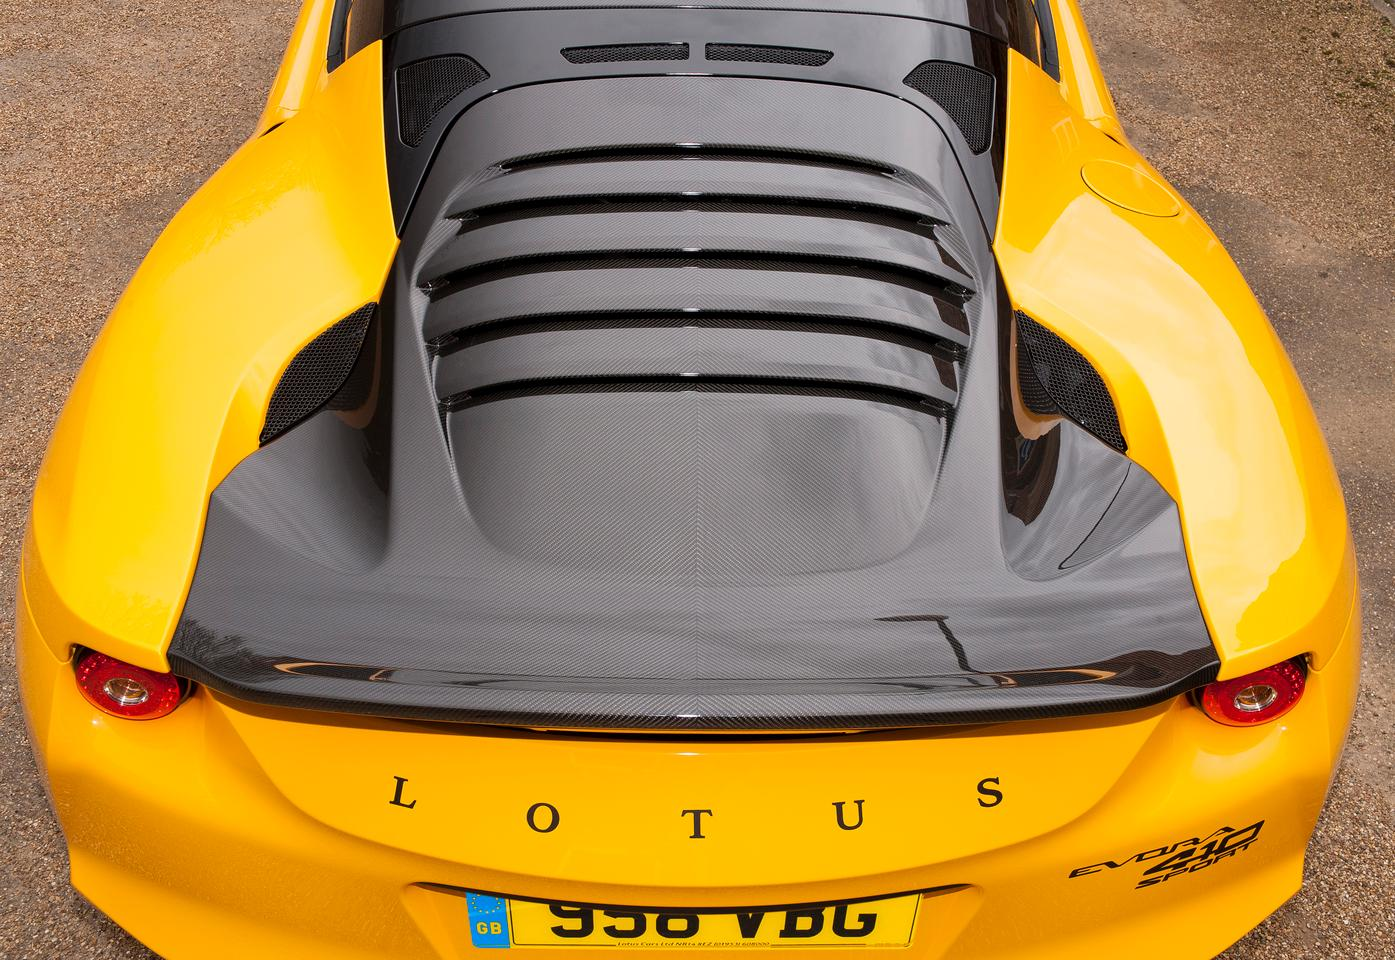 The Evora Sport 410 has a carbon fiber tailgate with integrated rear spoiler and louvered backlight